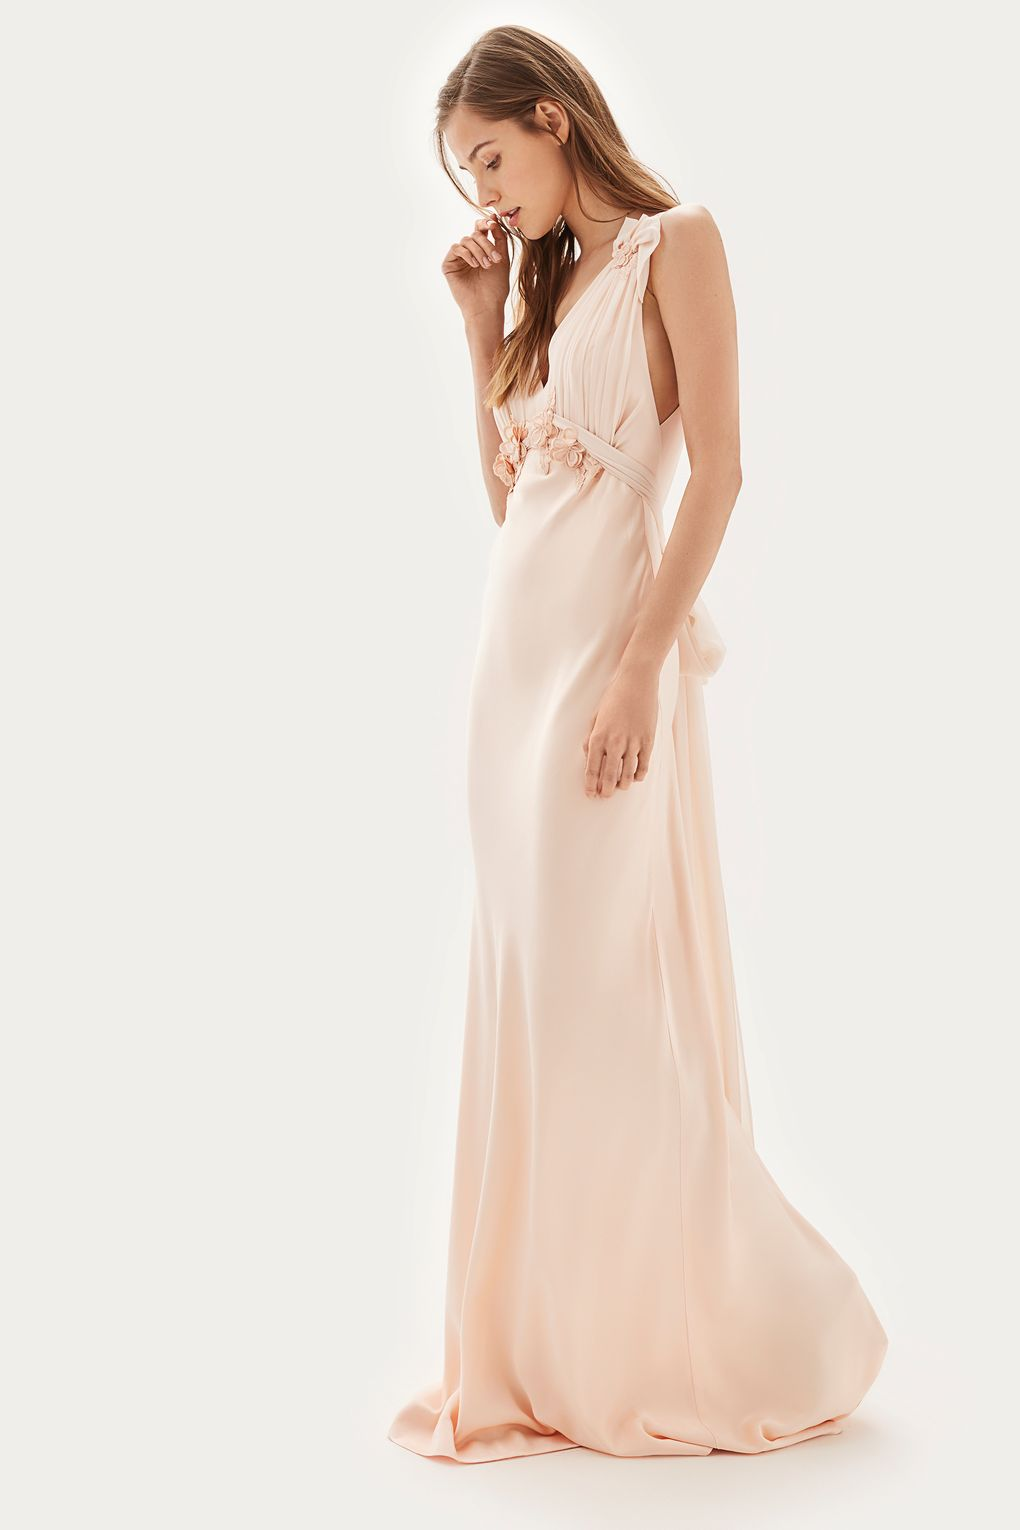 TS.Embroidered Applique Maxi Bridal Dress